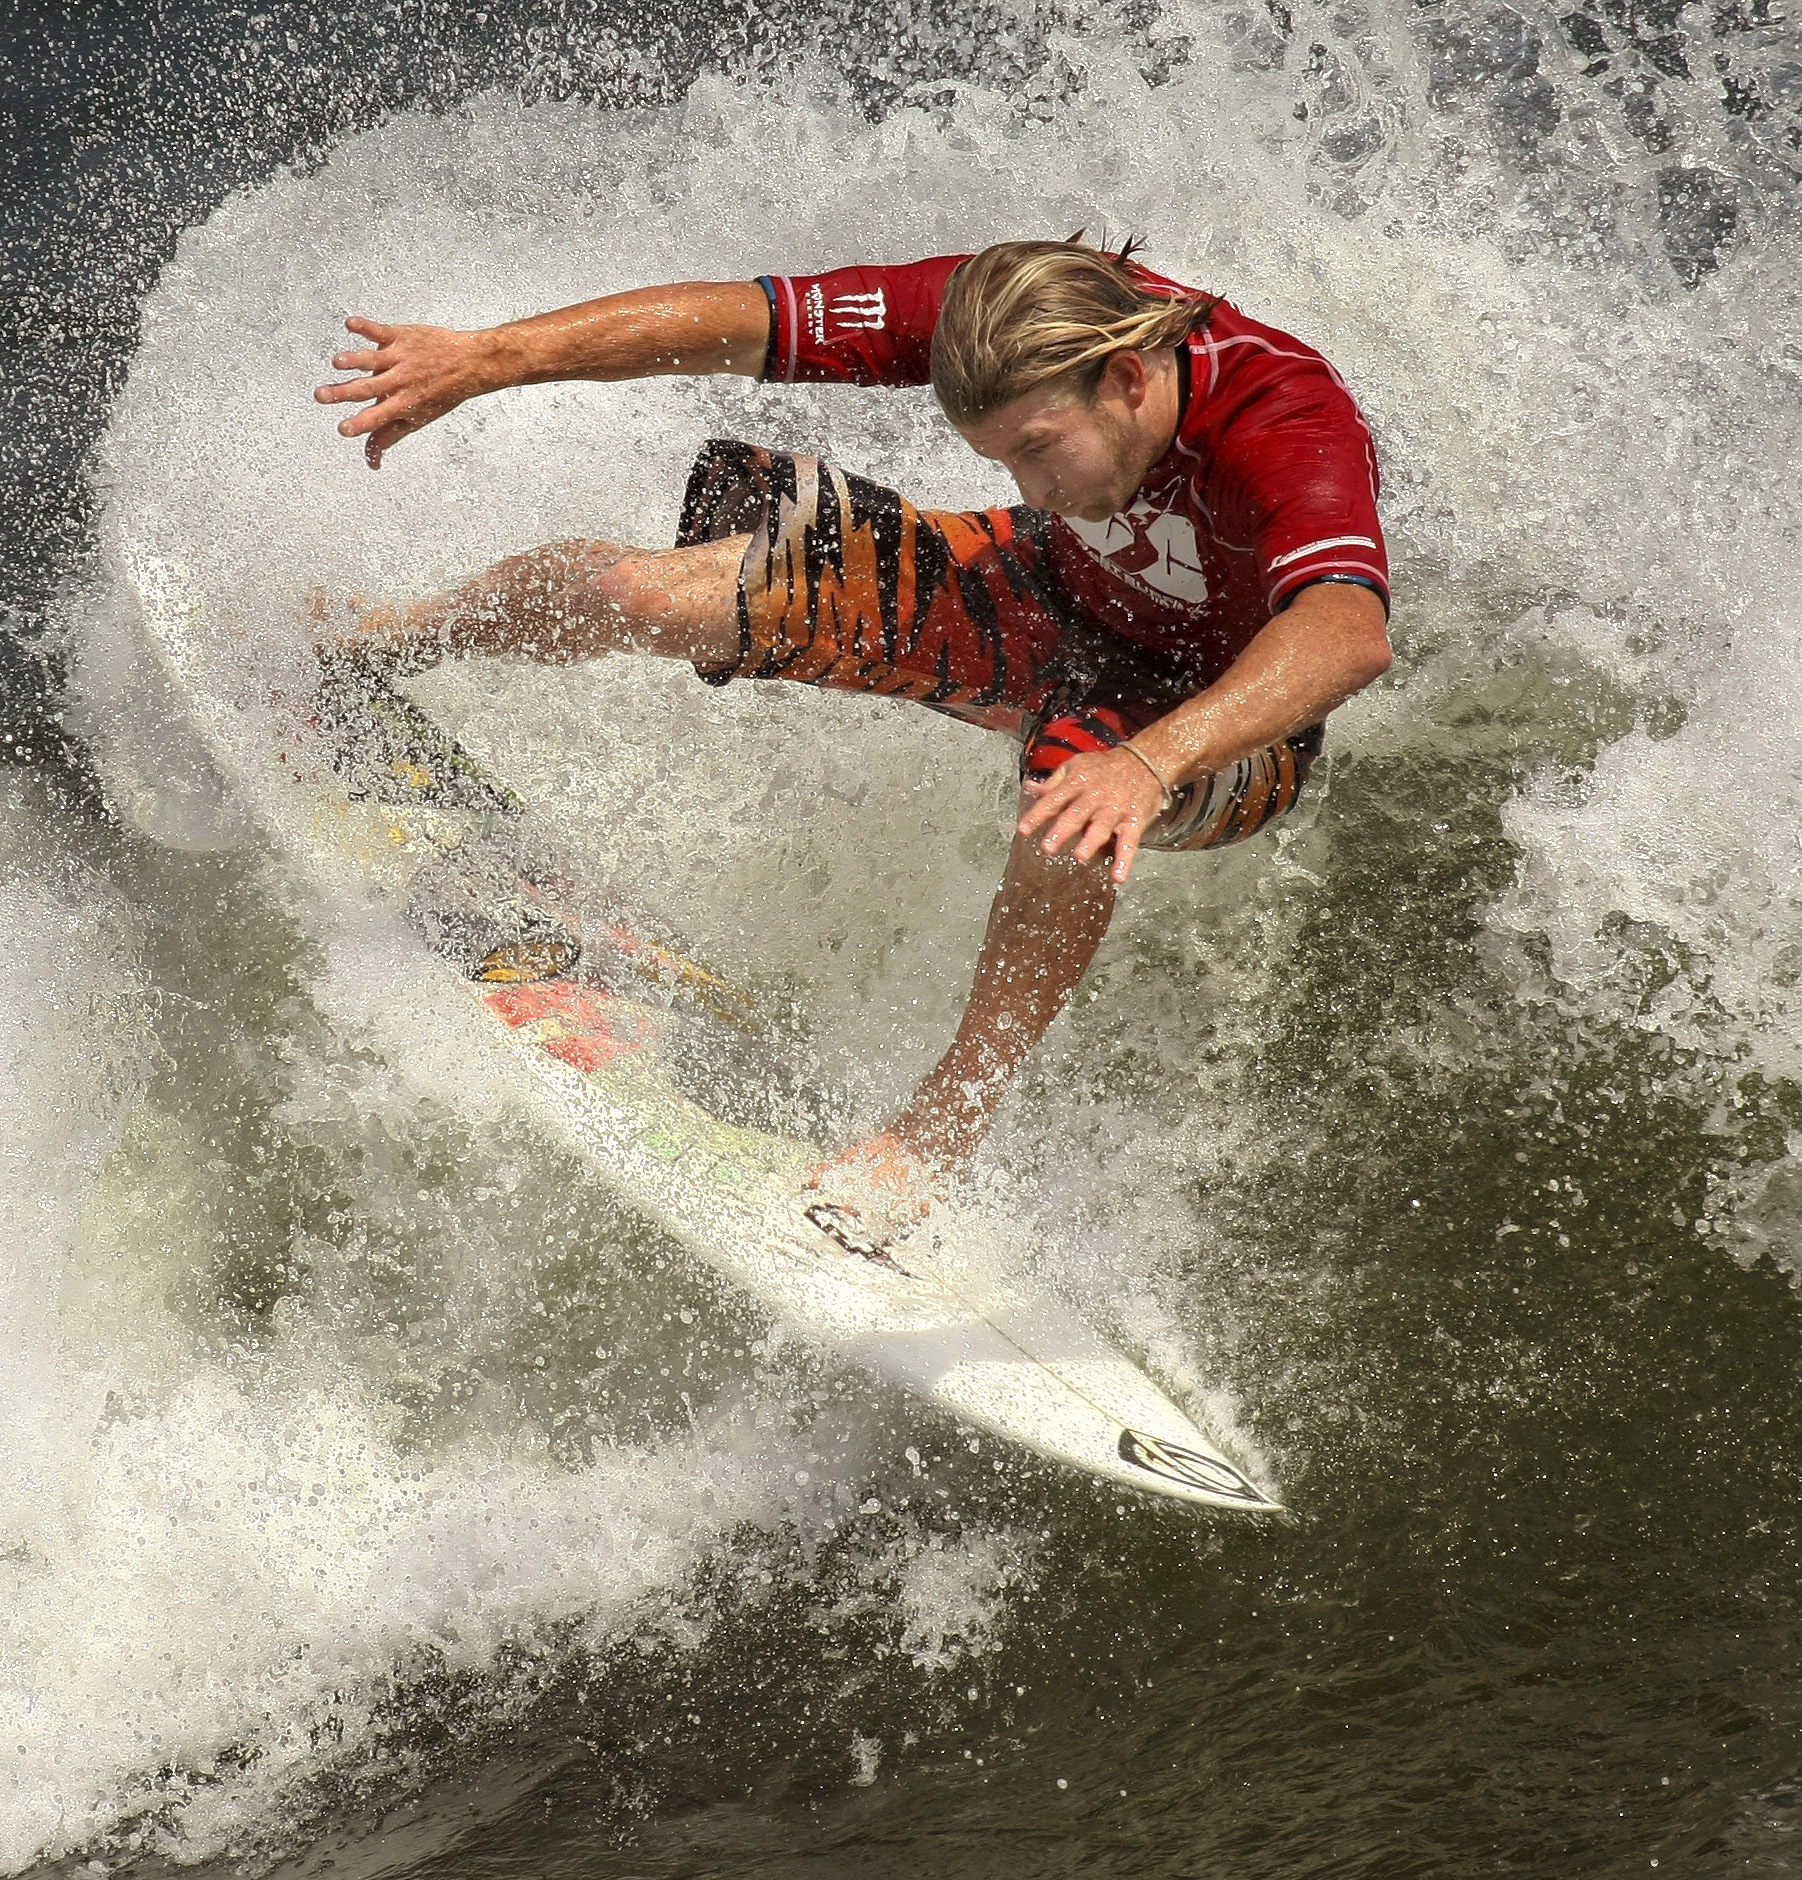 2009, Aaron Cormican of Fl., pulls off a 360 tail slide during the men's pro finals at the 47th Annual East Coast Surfing Championships. Cormican would win the ECSC pro men's title.